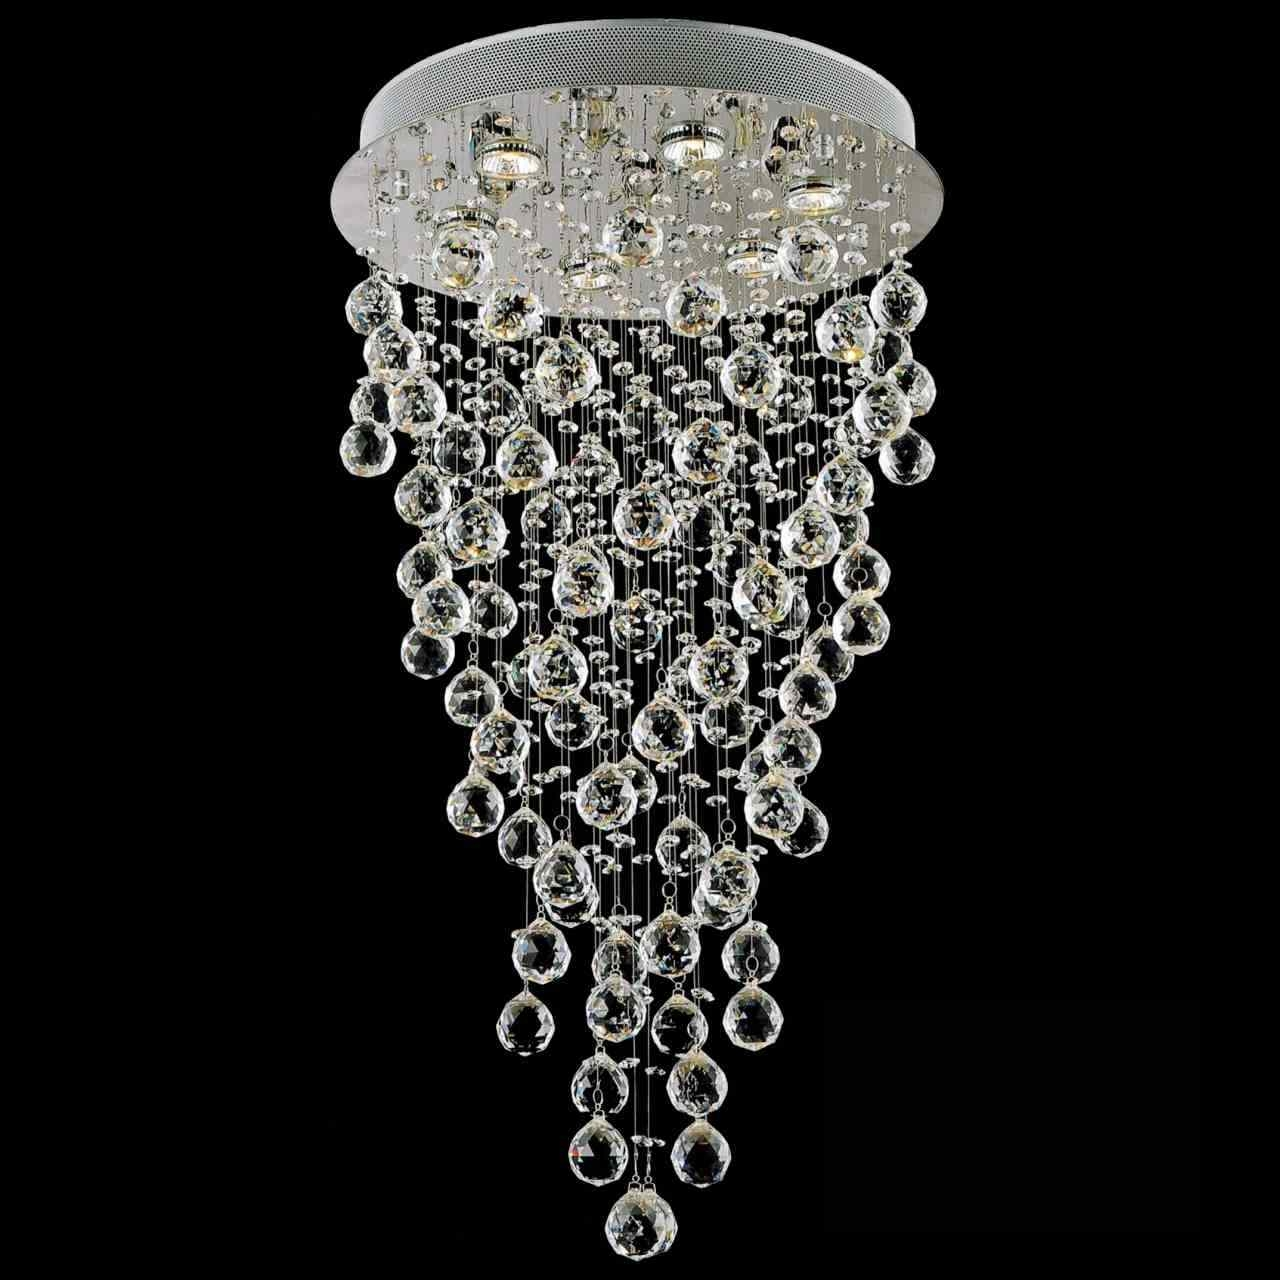 Brizzo Lighting Stores 32 Raindrops Modern Foyer Crystal Round Throughout Chandelier Mirror (#2 of 12)